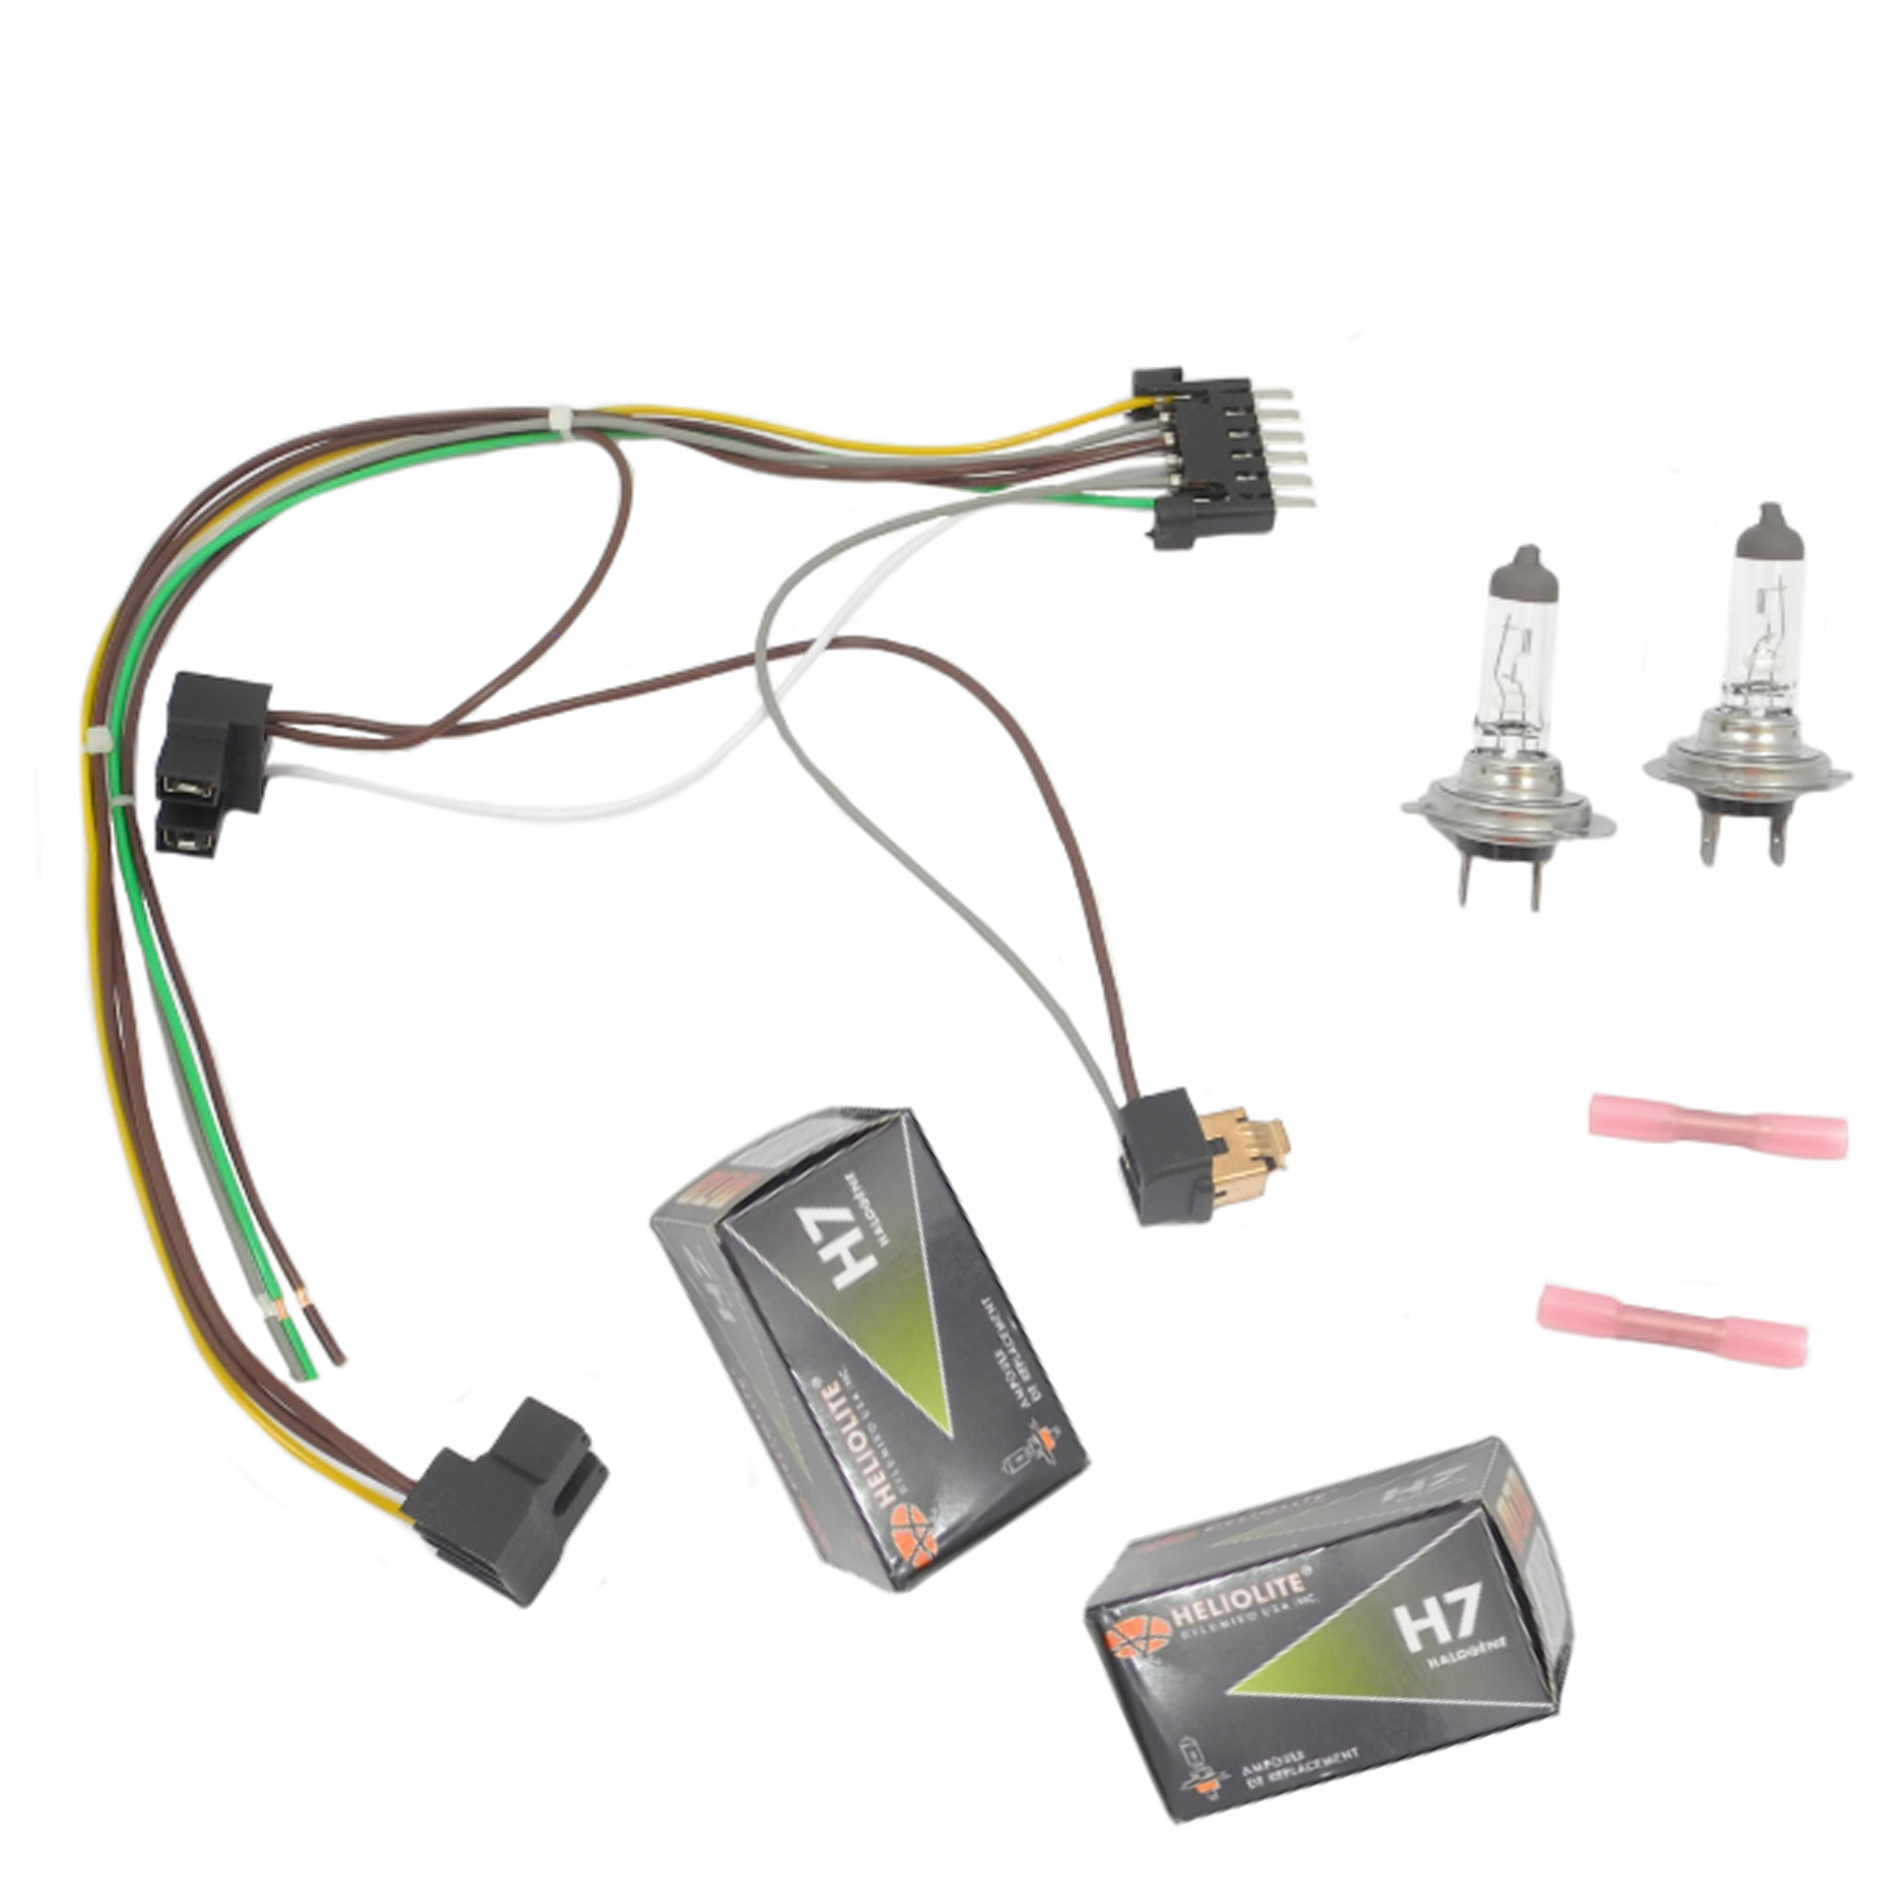 Pleasant H7 Headlight Wire Harness Basic Electronics Wiring Diagram Wiring Digital Resources Ommitdefiancerspsorg